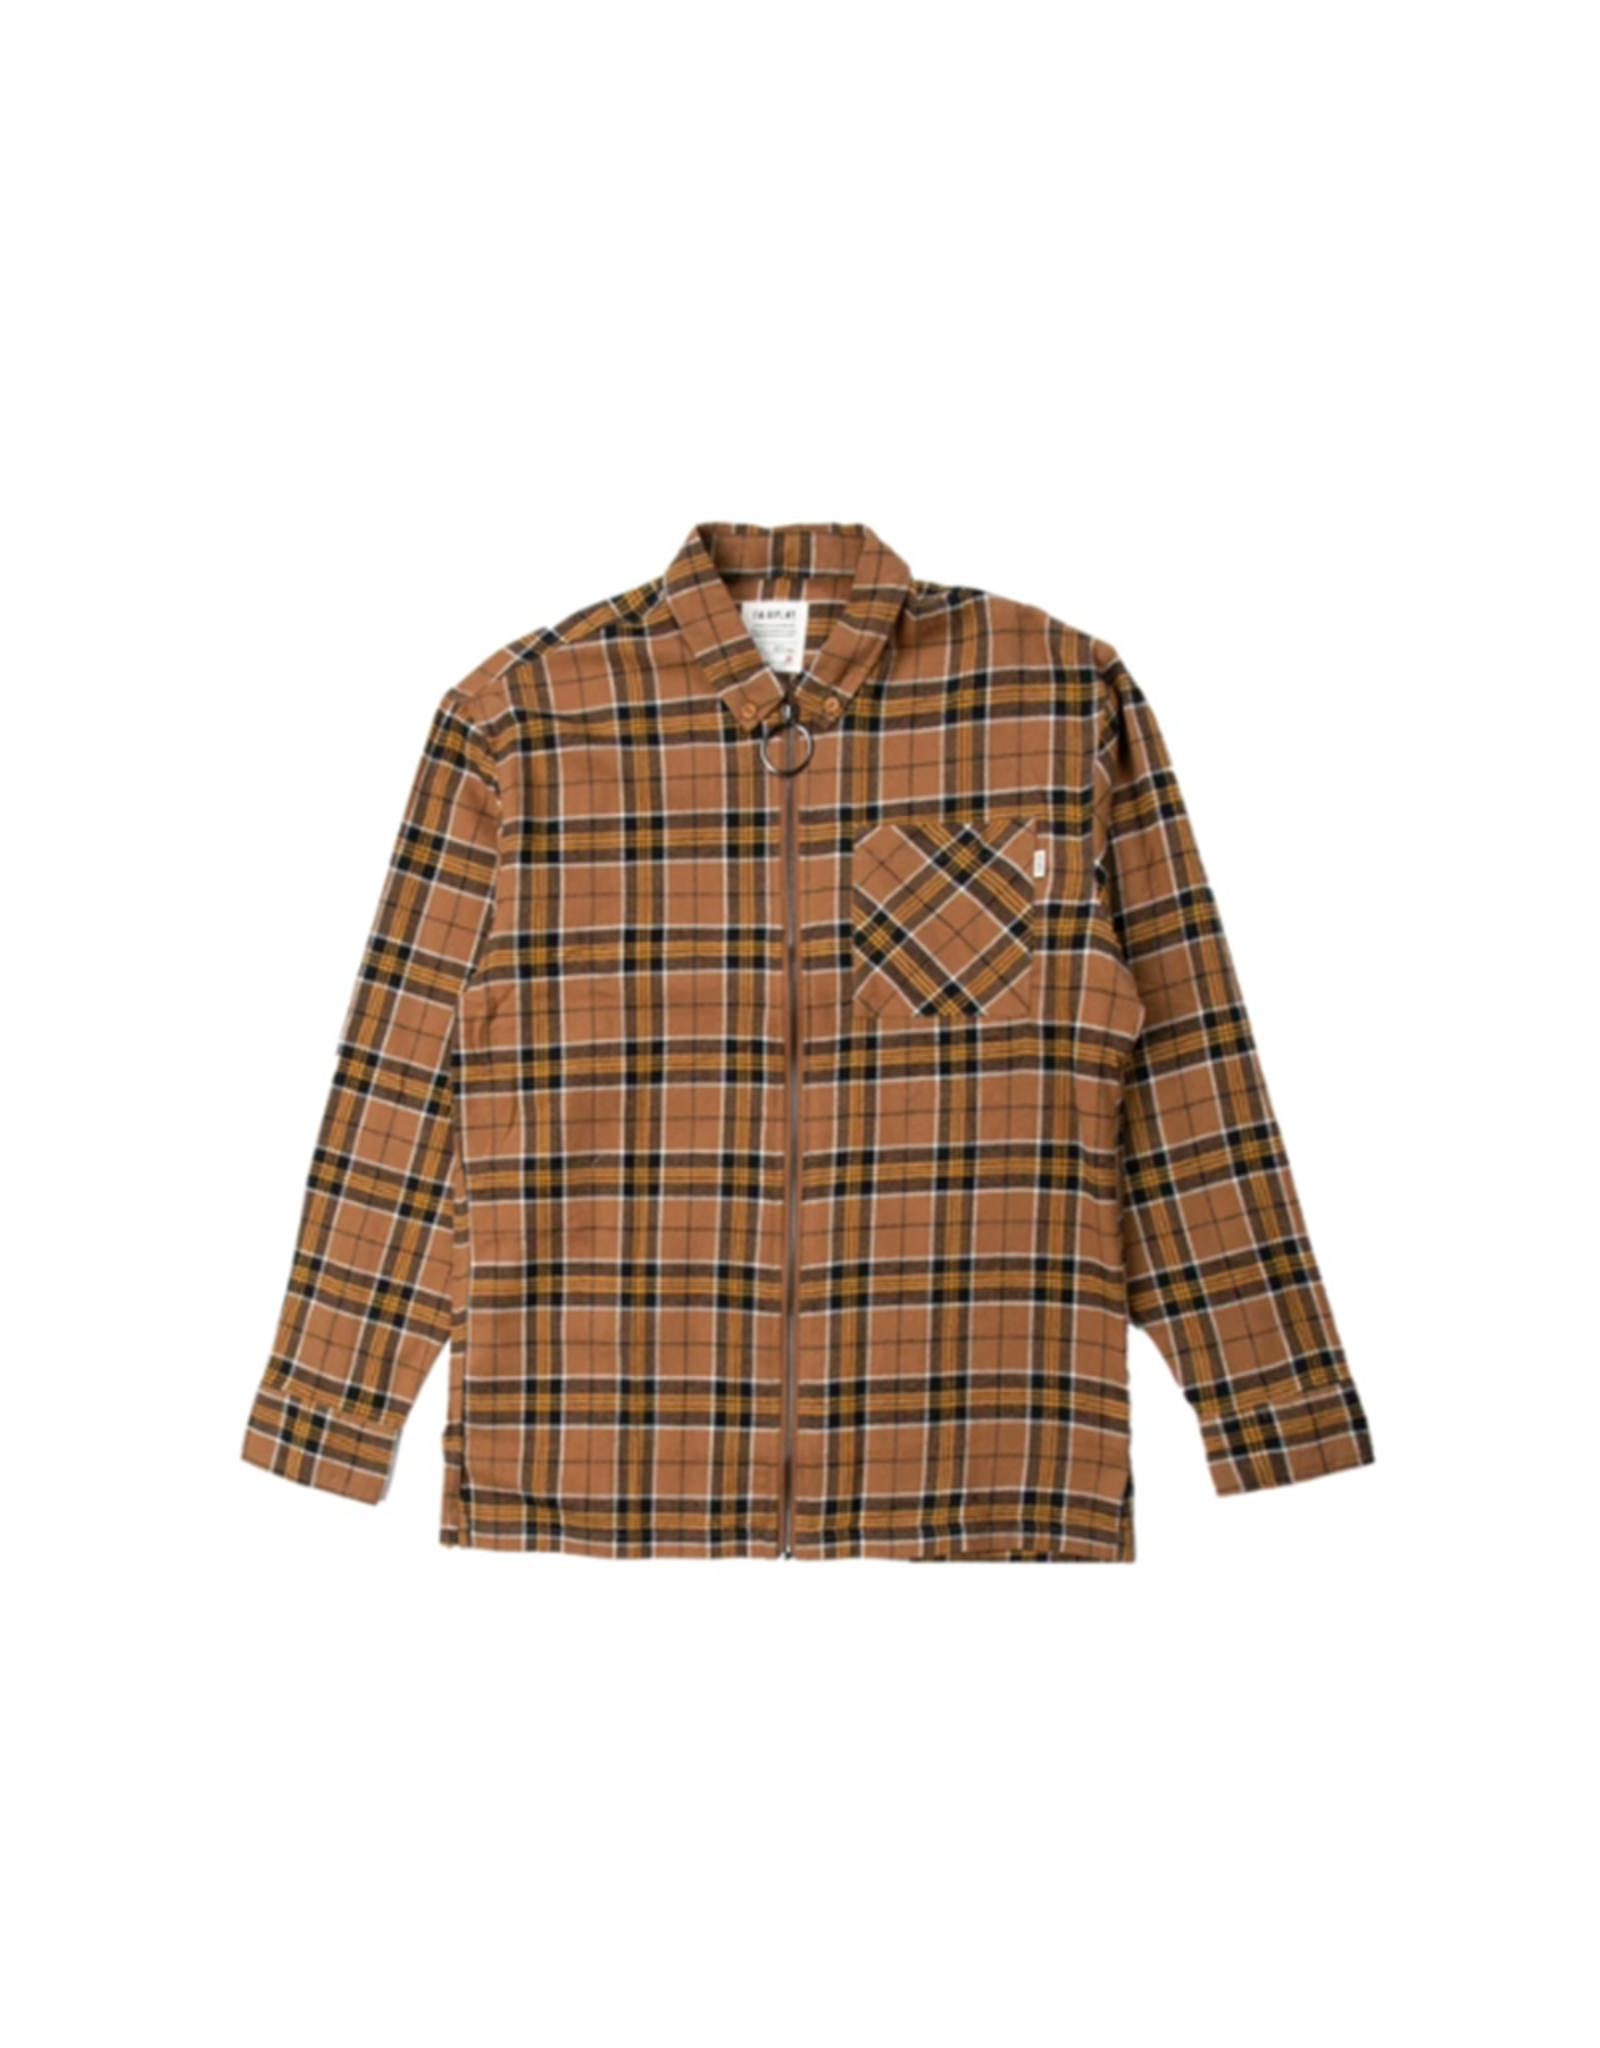 Fairplay Ozias Plaid Flannel Long Sleeve